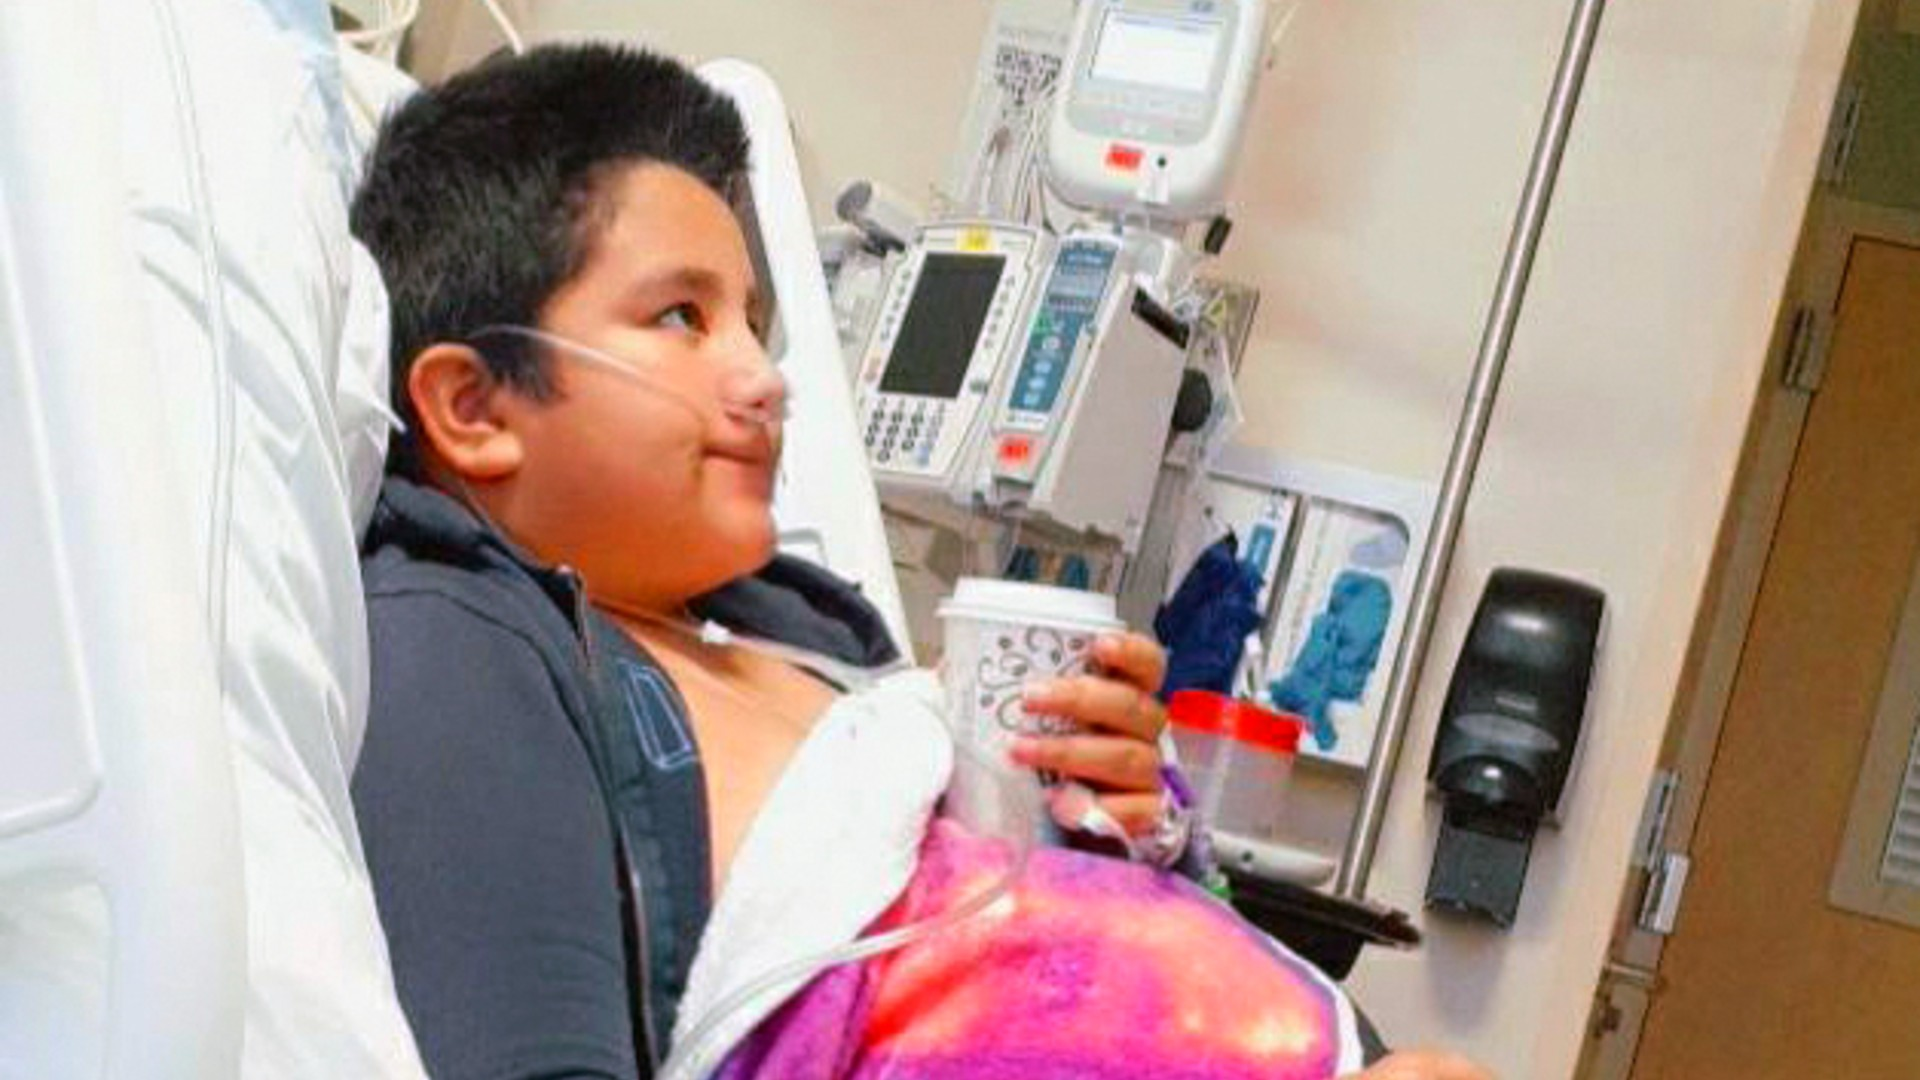 This 2021 photo provided by Yessica Gonzalez shows her son, Francisco Rosales, 9, in the intensive care unit at Children's Medical Center in Dallas, Texas. The day before he was supposed to start fourth grade, Francisco was admitted to the hospital due to severe COVID-19, struggling to breathe, with dangerously low oxygen levels and an uncertain outcome. (Yessica Gonzalez via AP)